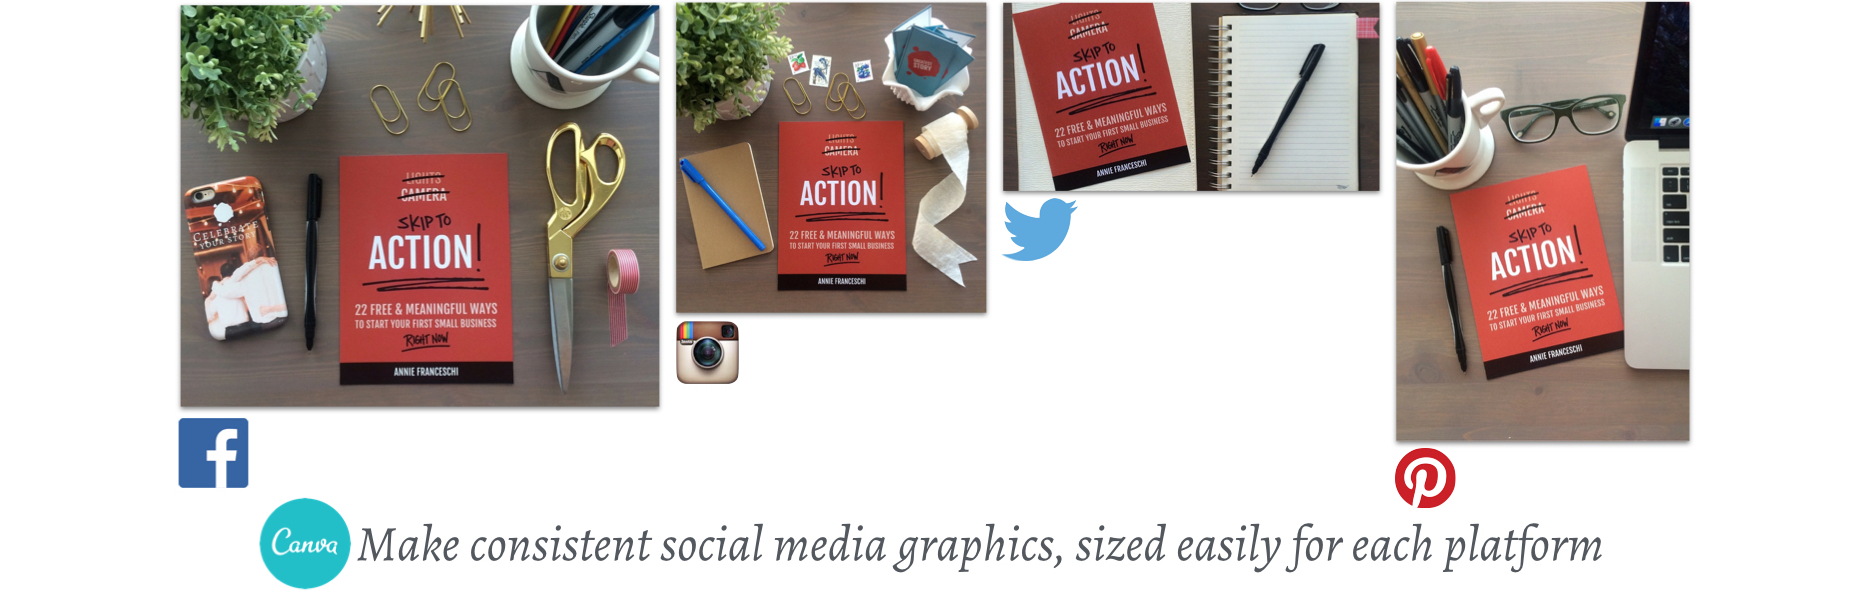 Use Canva to easily create social media graphics, sized correctly for each platform | Greatest Story for Business Blog